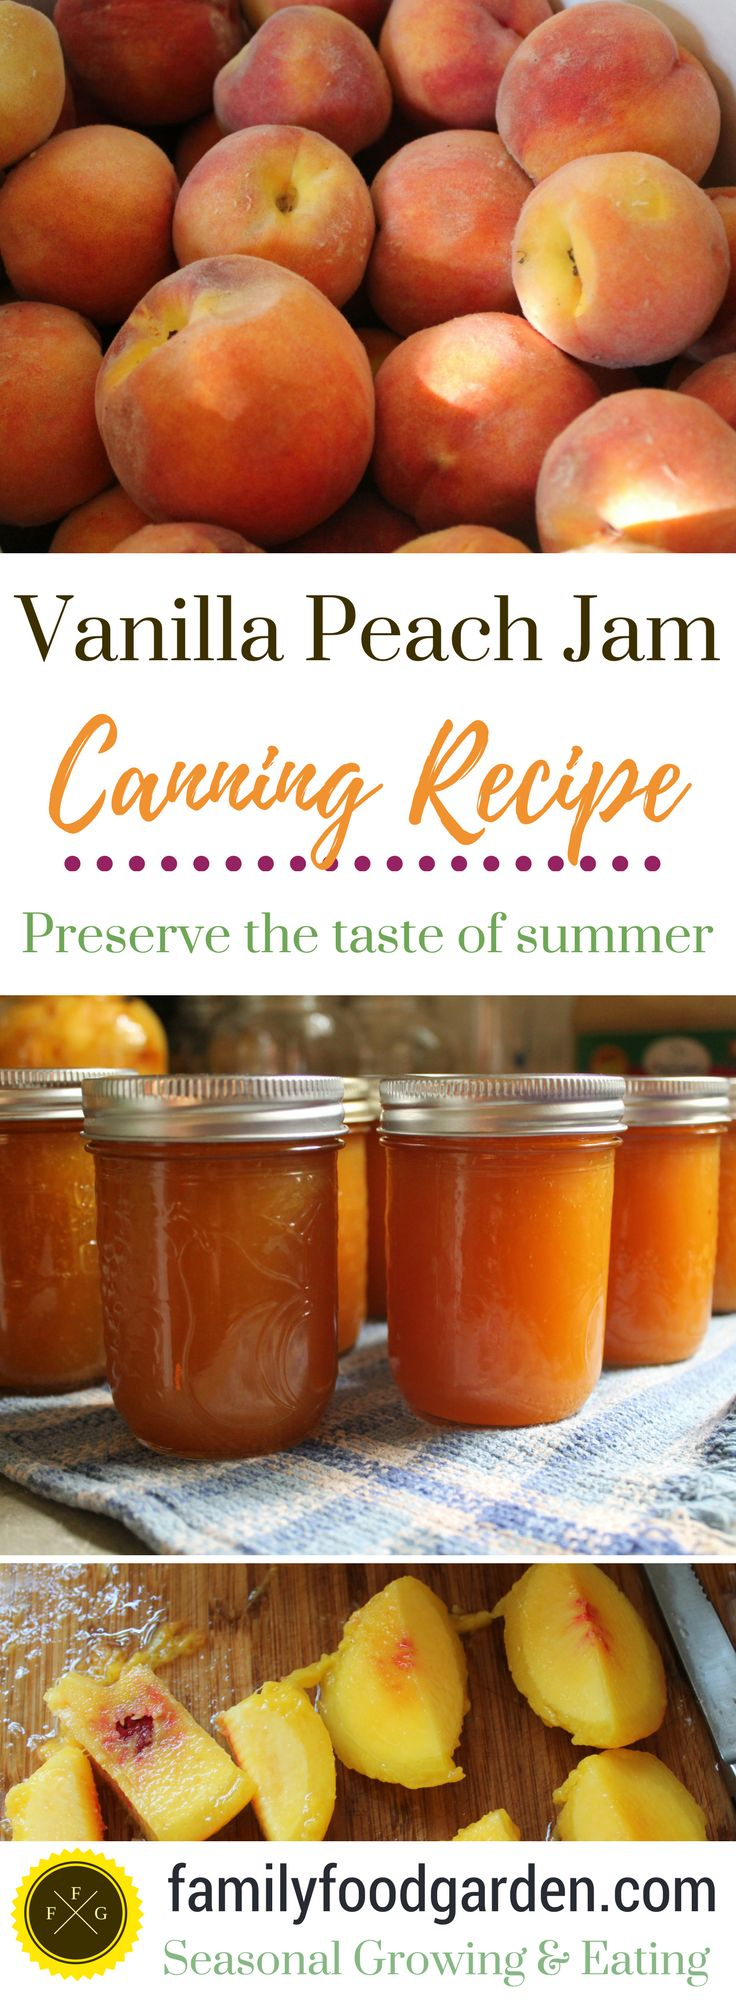 Peaches are a favorite summer fruit and preserving them for the off-season is a great way to enjoy them year-round. Every summer we can lots of peach slicesin 1 Quartjars (1L) for those snowy winter months. I also make vanilla peach jam every summer and it's delicious. Adding vanilla to peach jam just adds that...